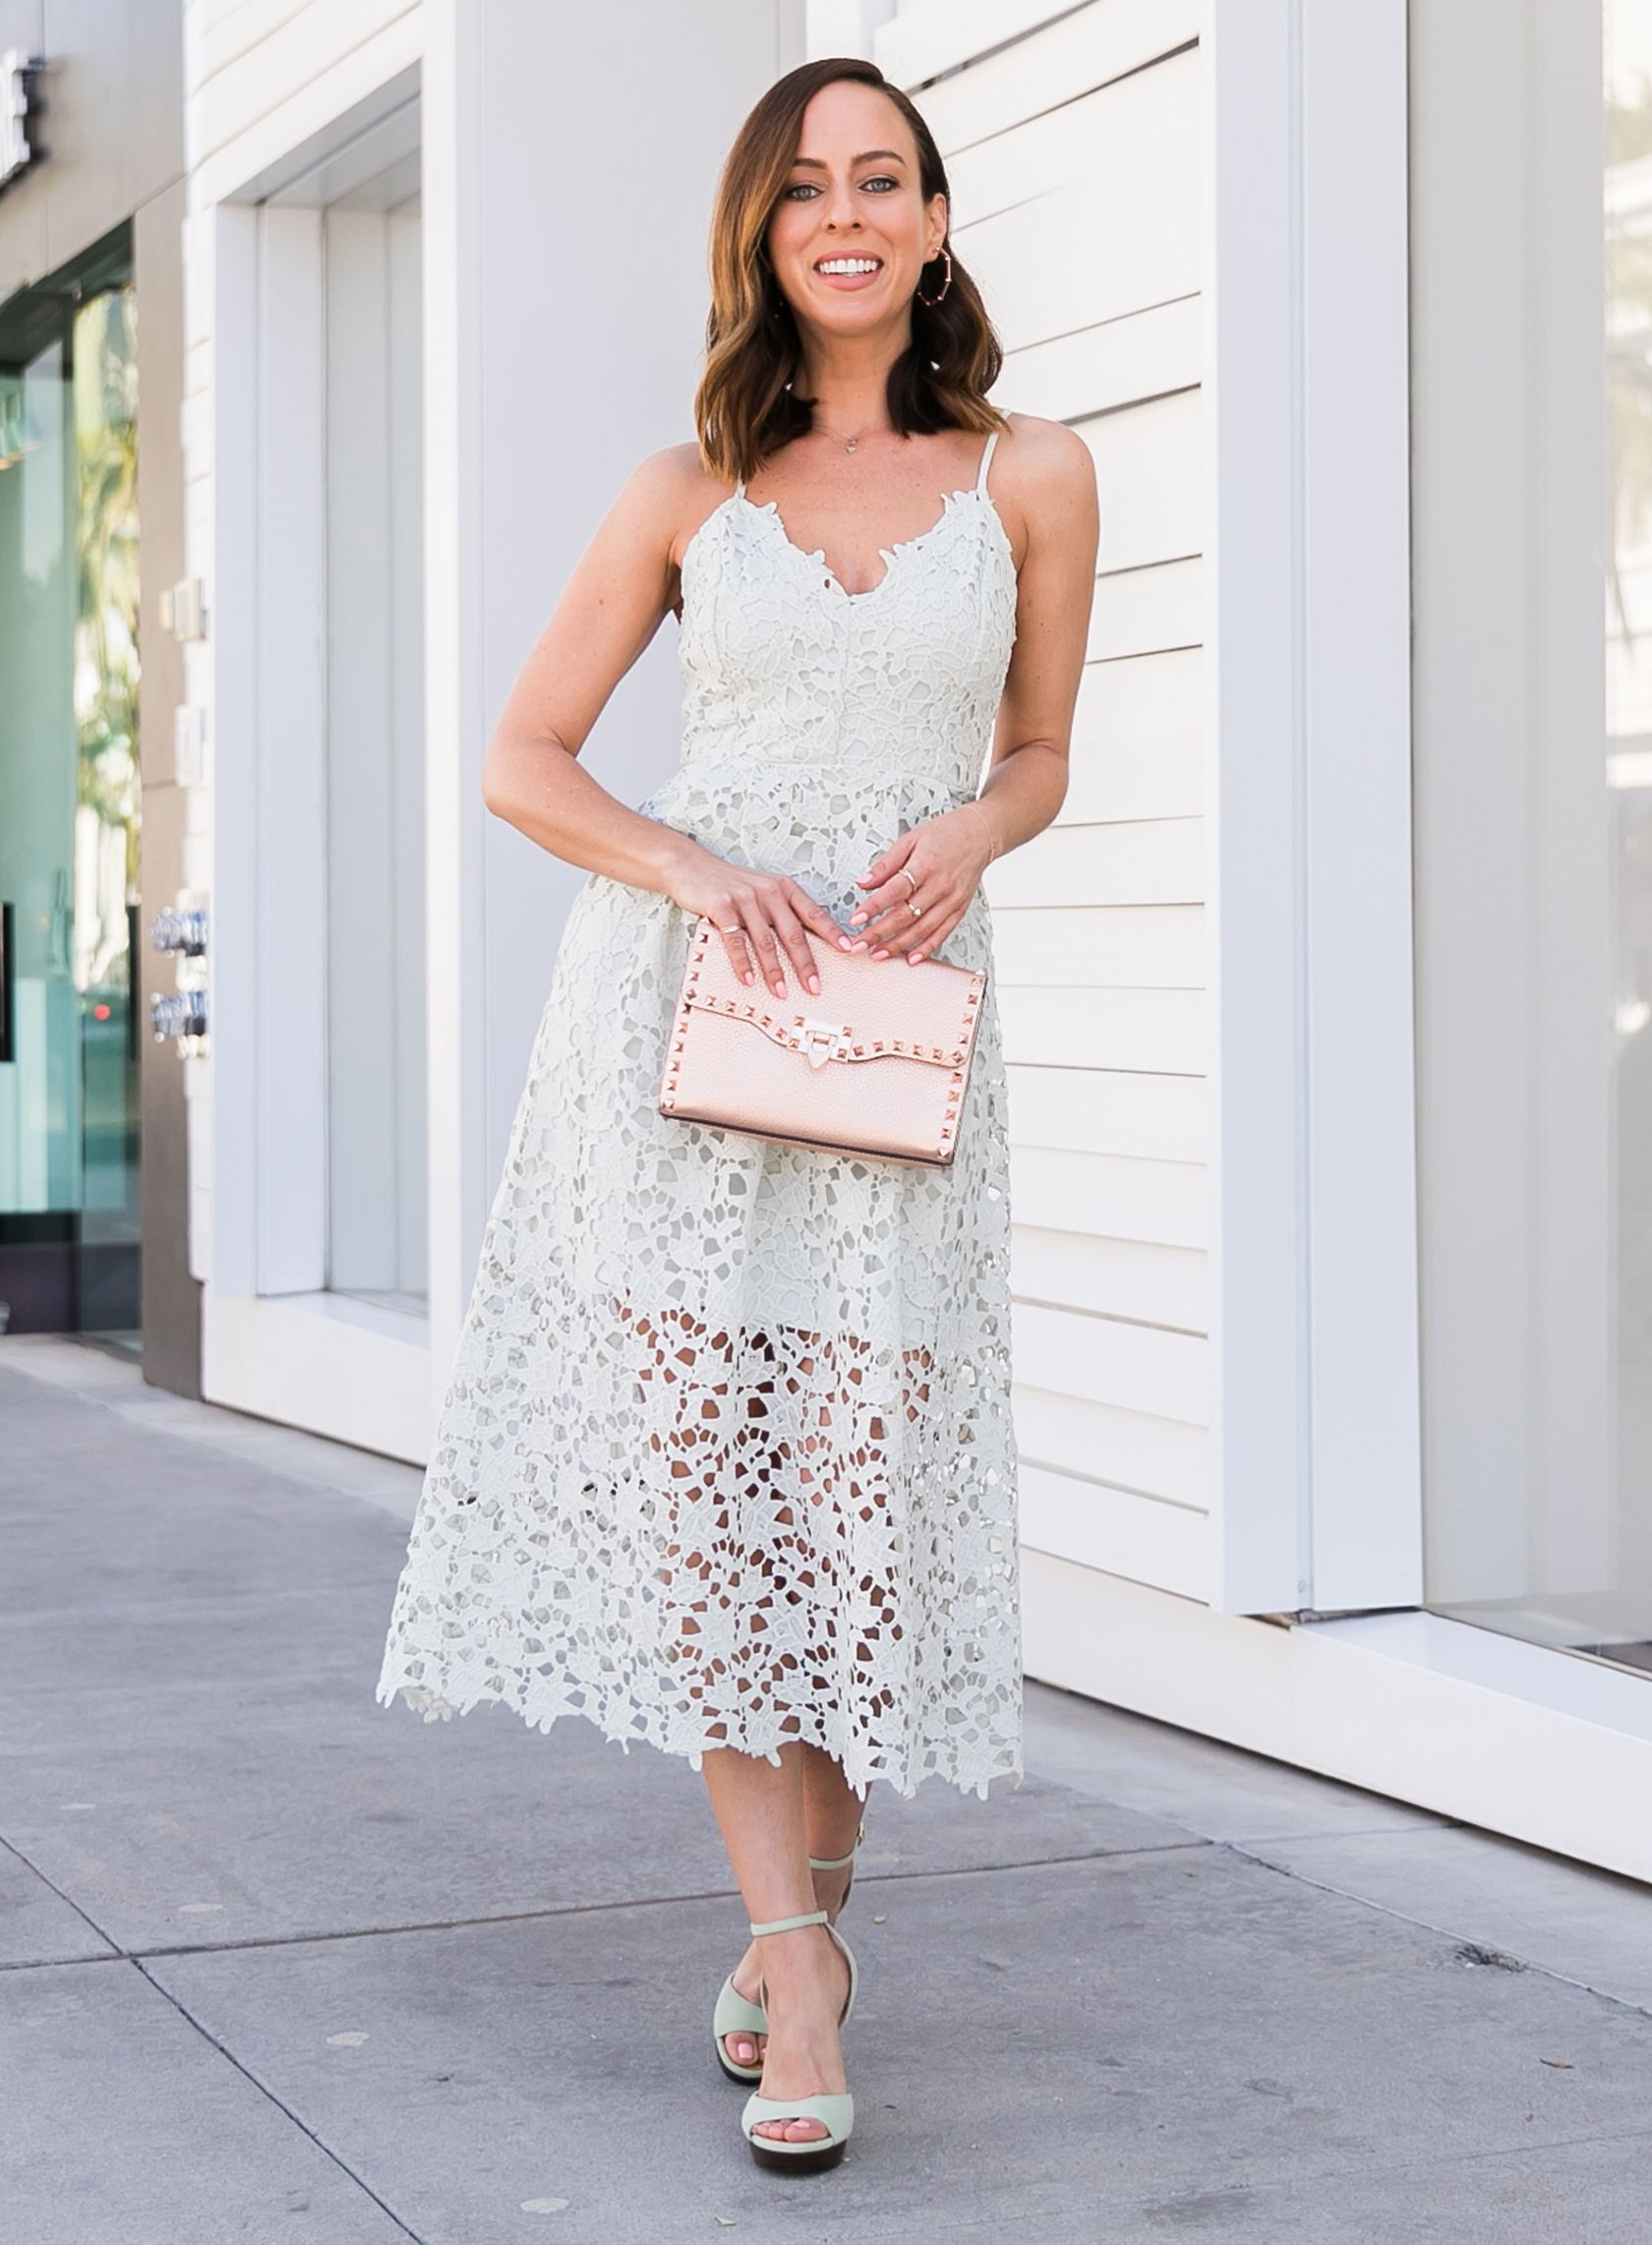 49f4b3d3d Sydne Style shows what to wear to a casual wedding in astr lace midi dress   lace  mint  weddings  rosegold  valentino  pastels